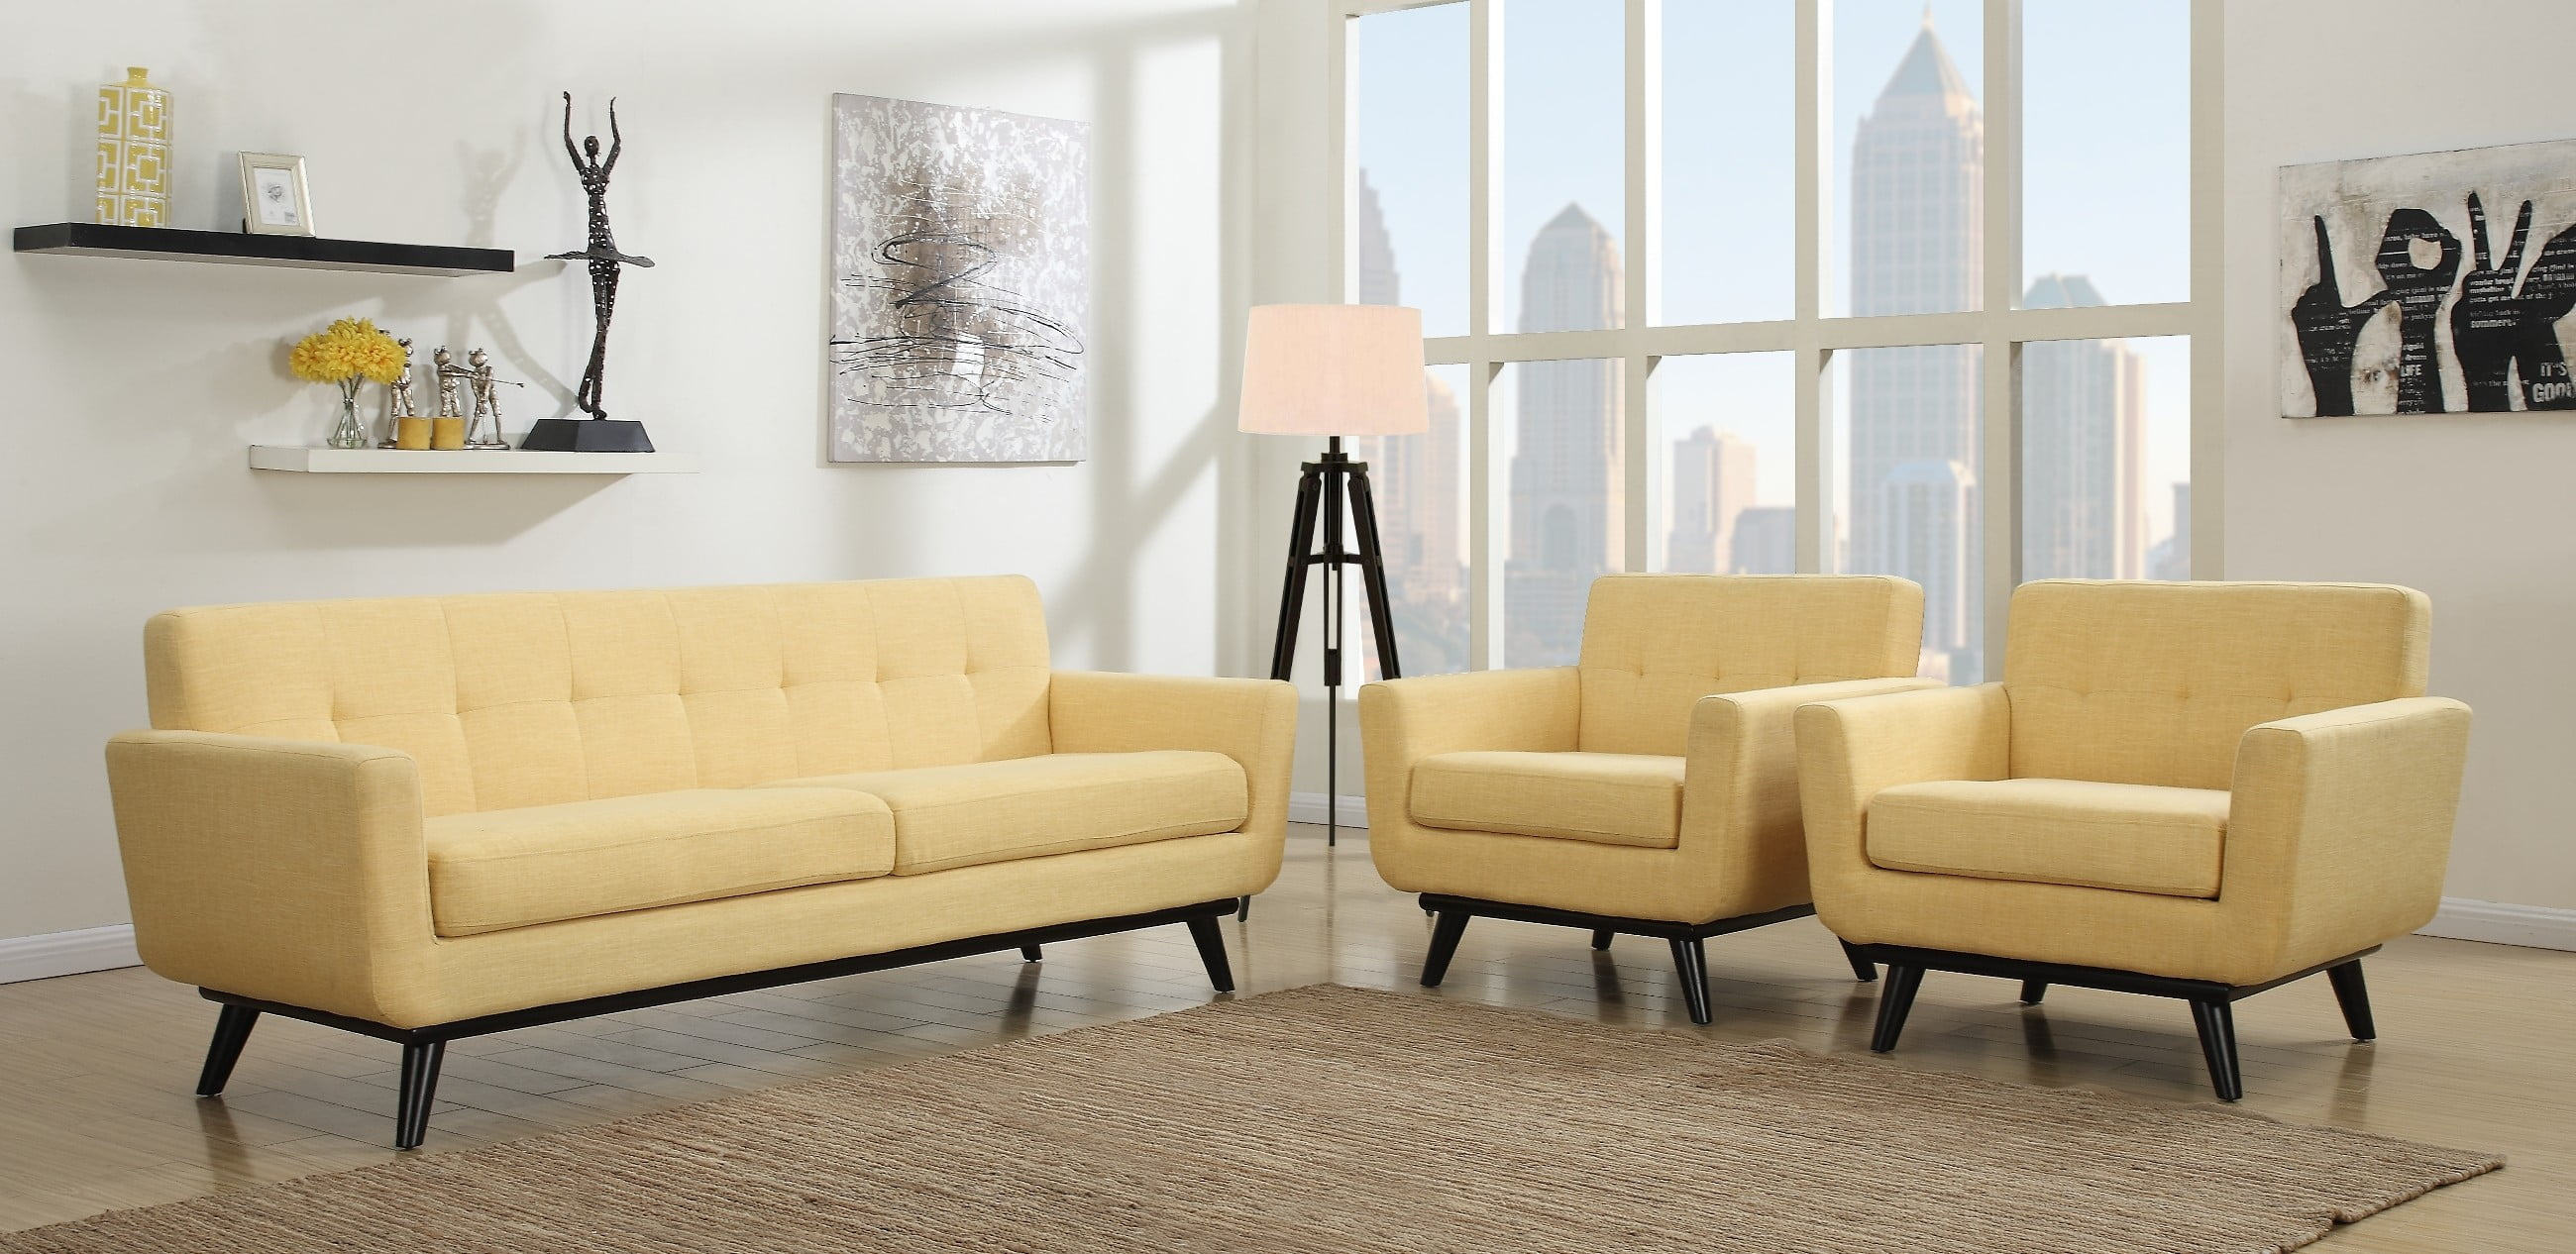 james mustard yellow linen sofa from tov (tov-s20s-y) | coleman